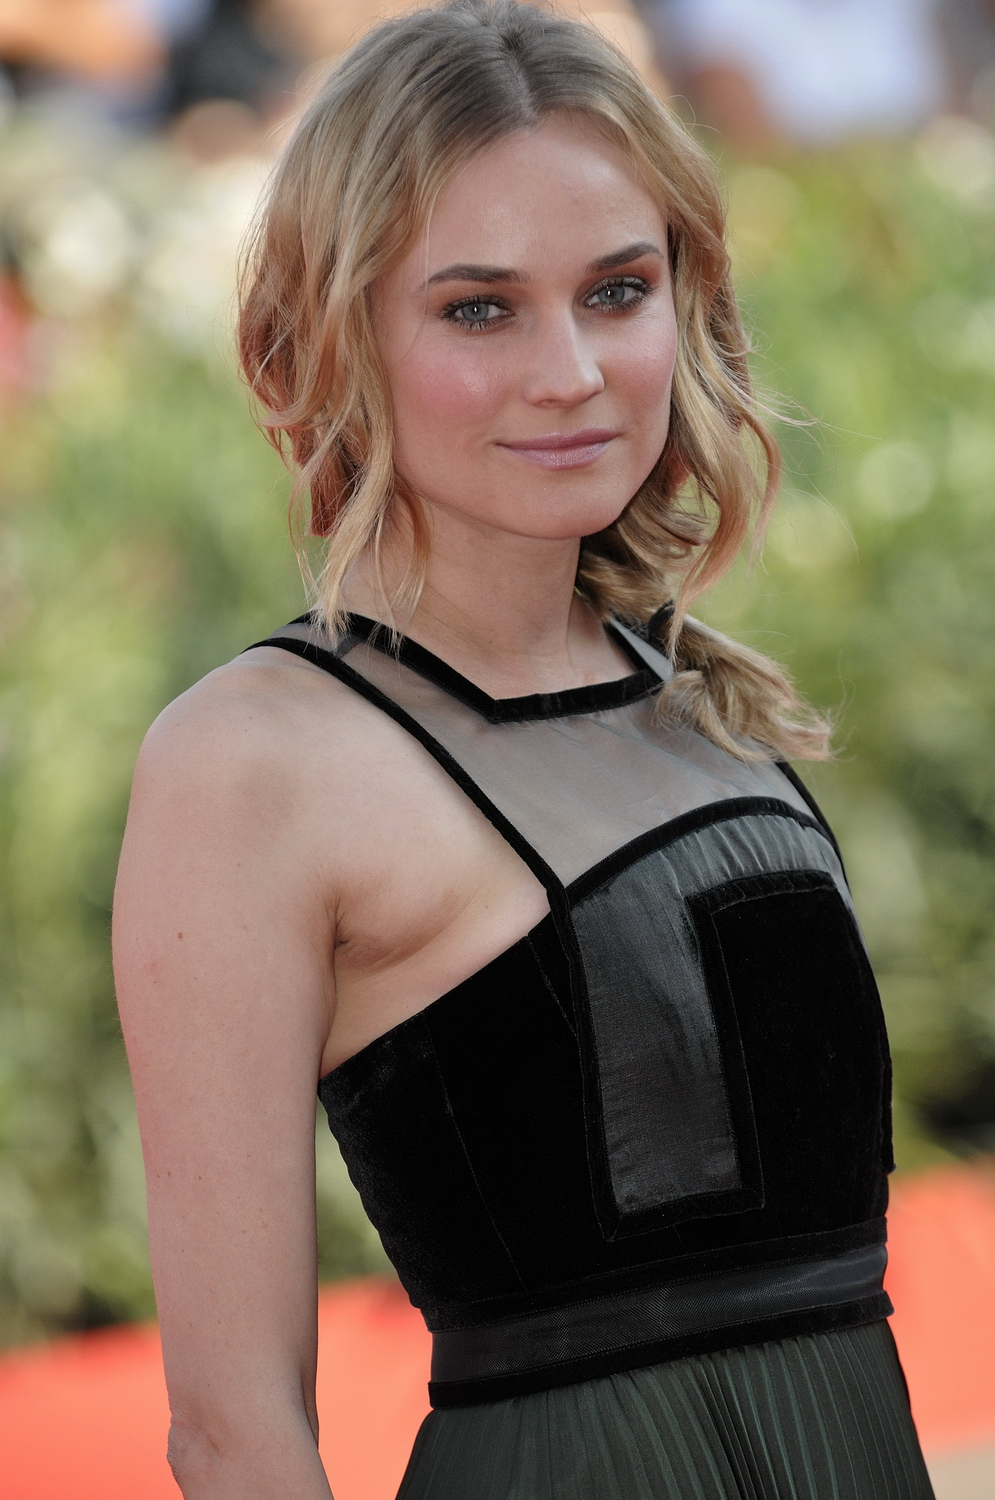 The 41-year old daughter of father Hans-Heinrich Heidkrüger and mother Maria-Theresa Heidkrüger, 170 cm tall Diane Kruger in 2018 photo